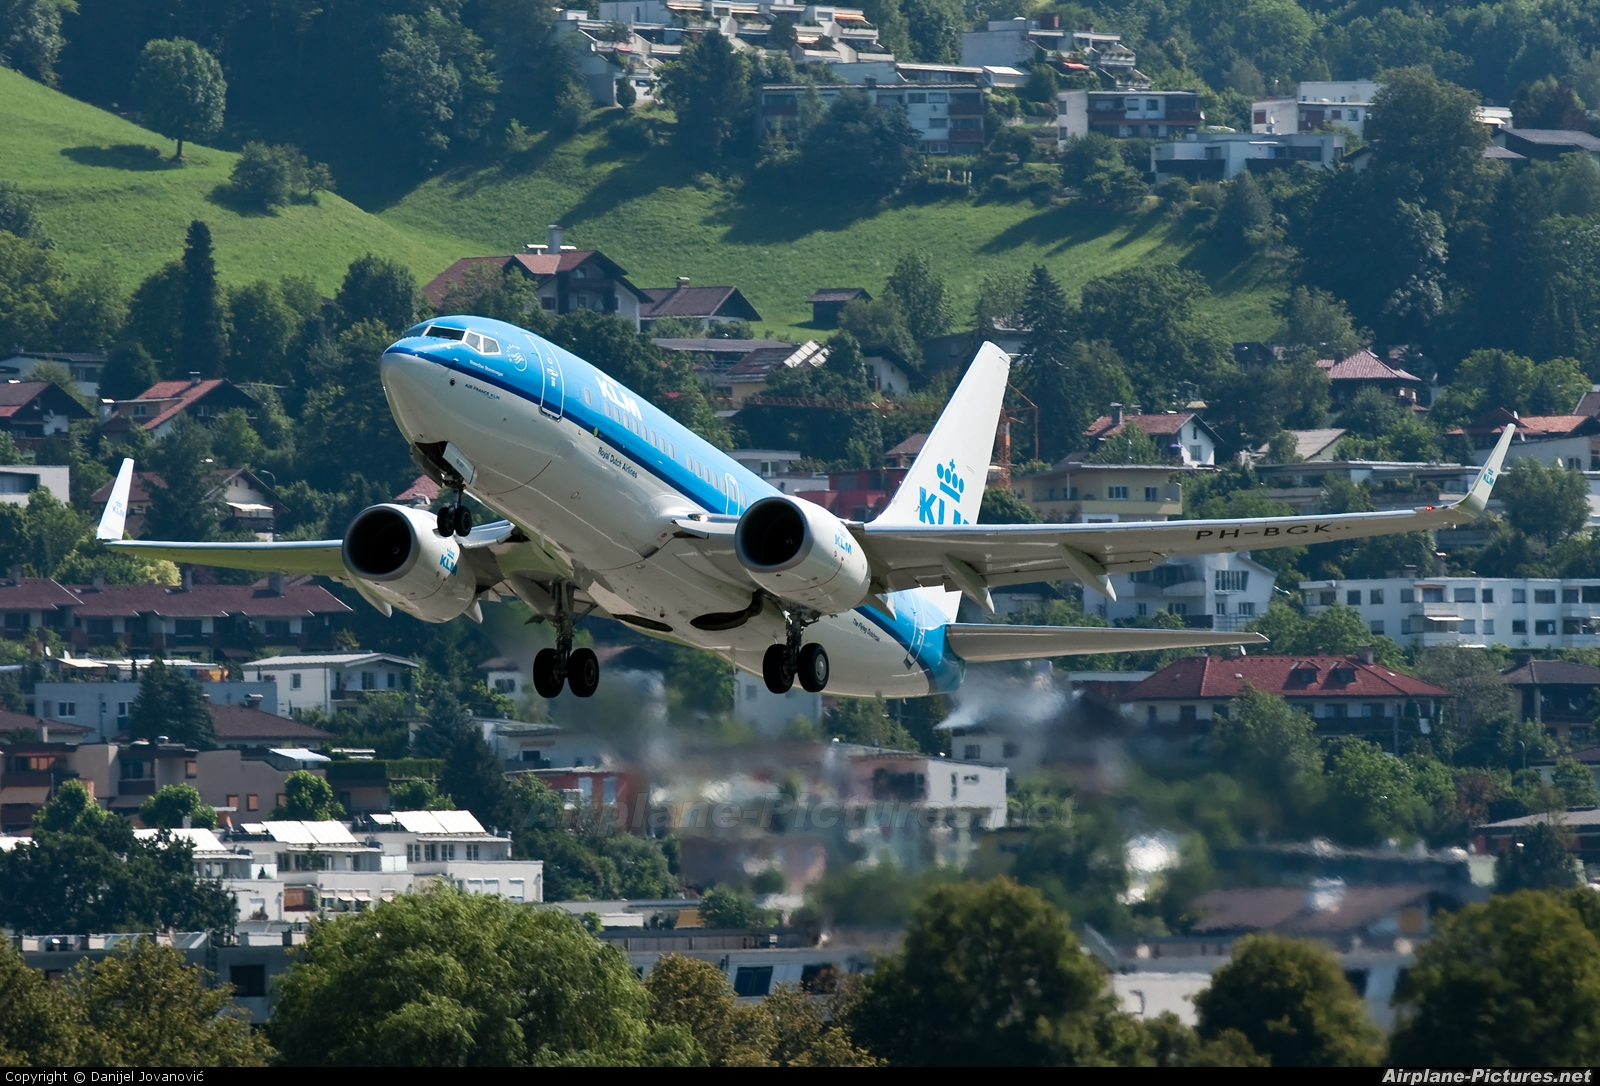 KLM PH-BGK aircraft at Innsbruck